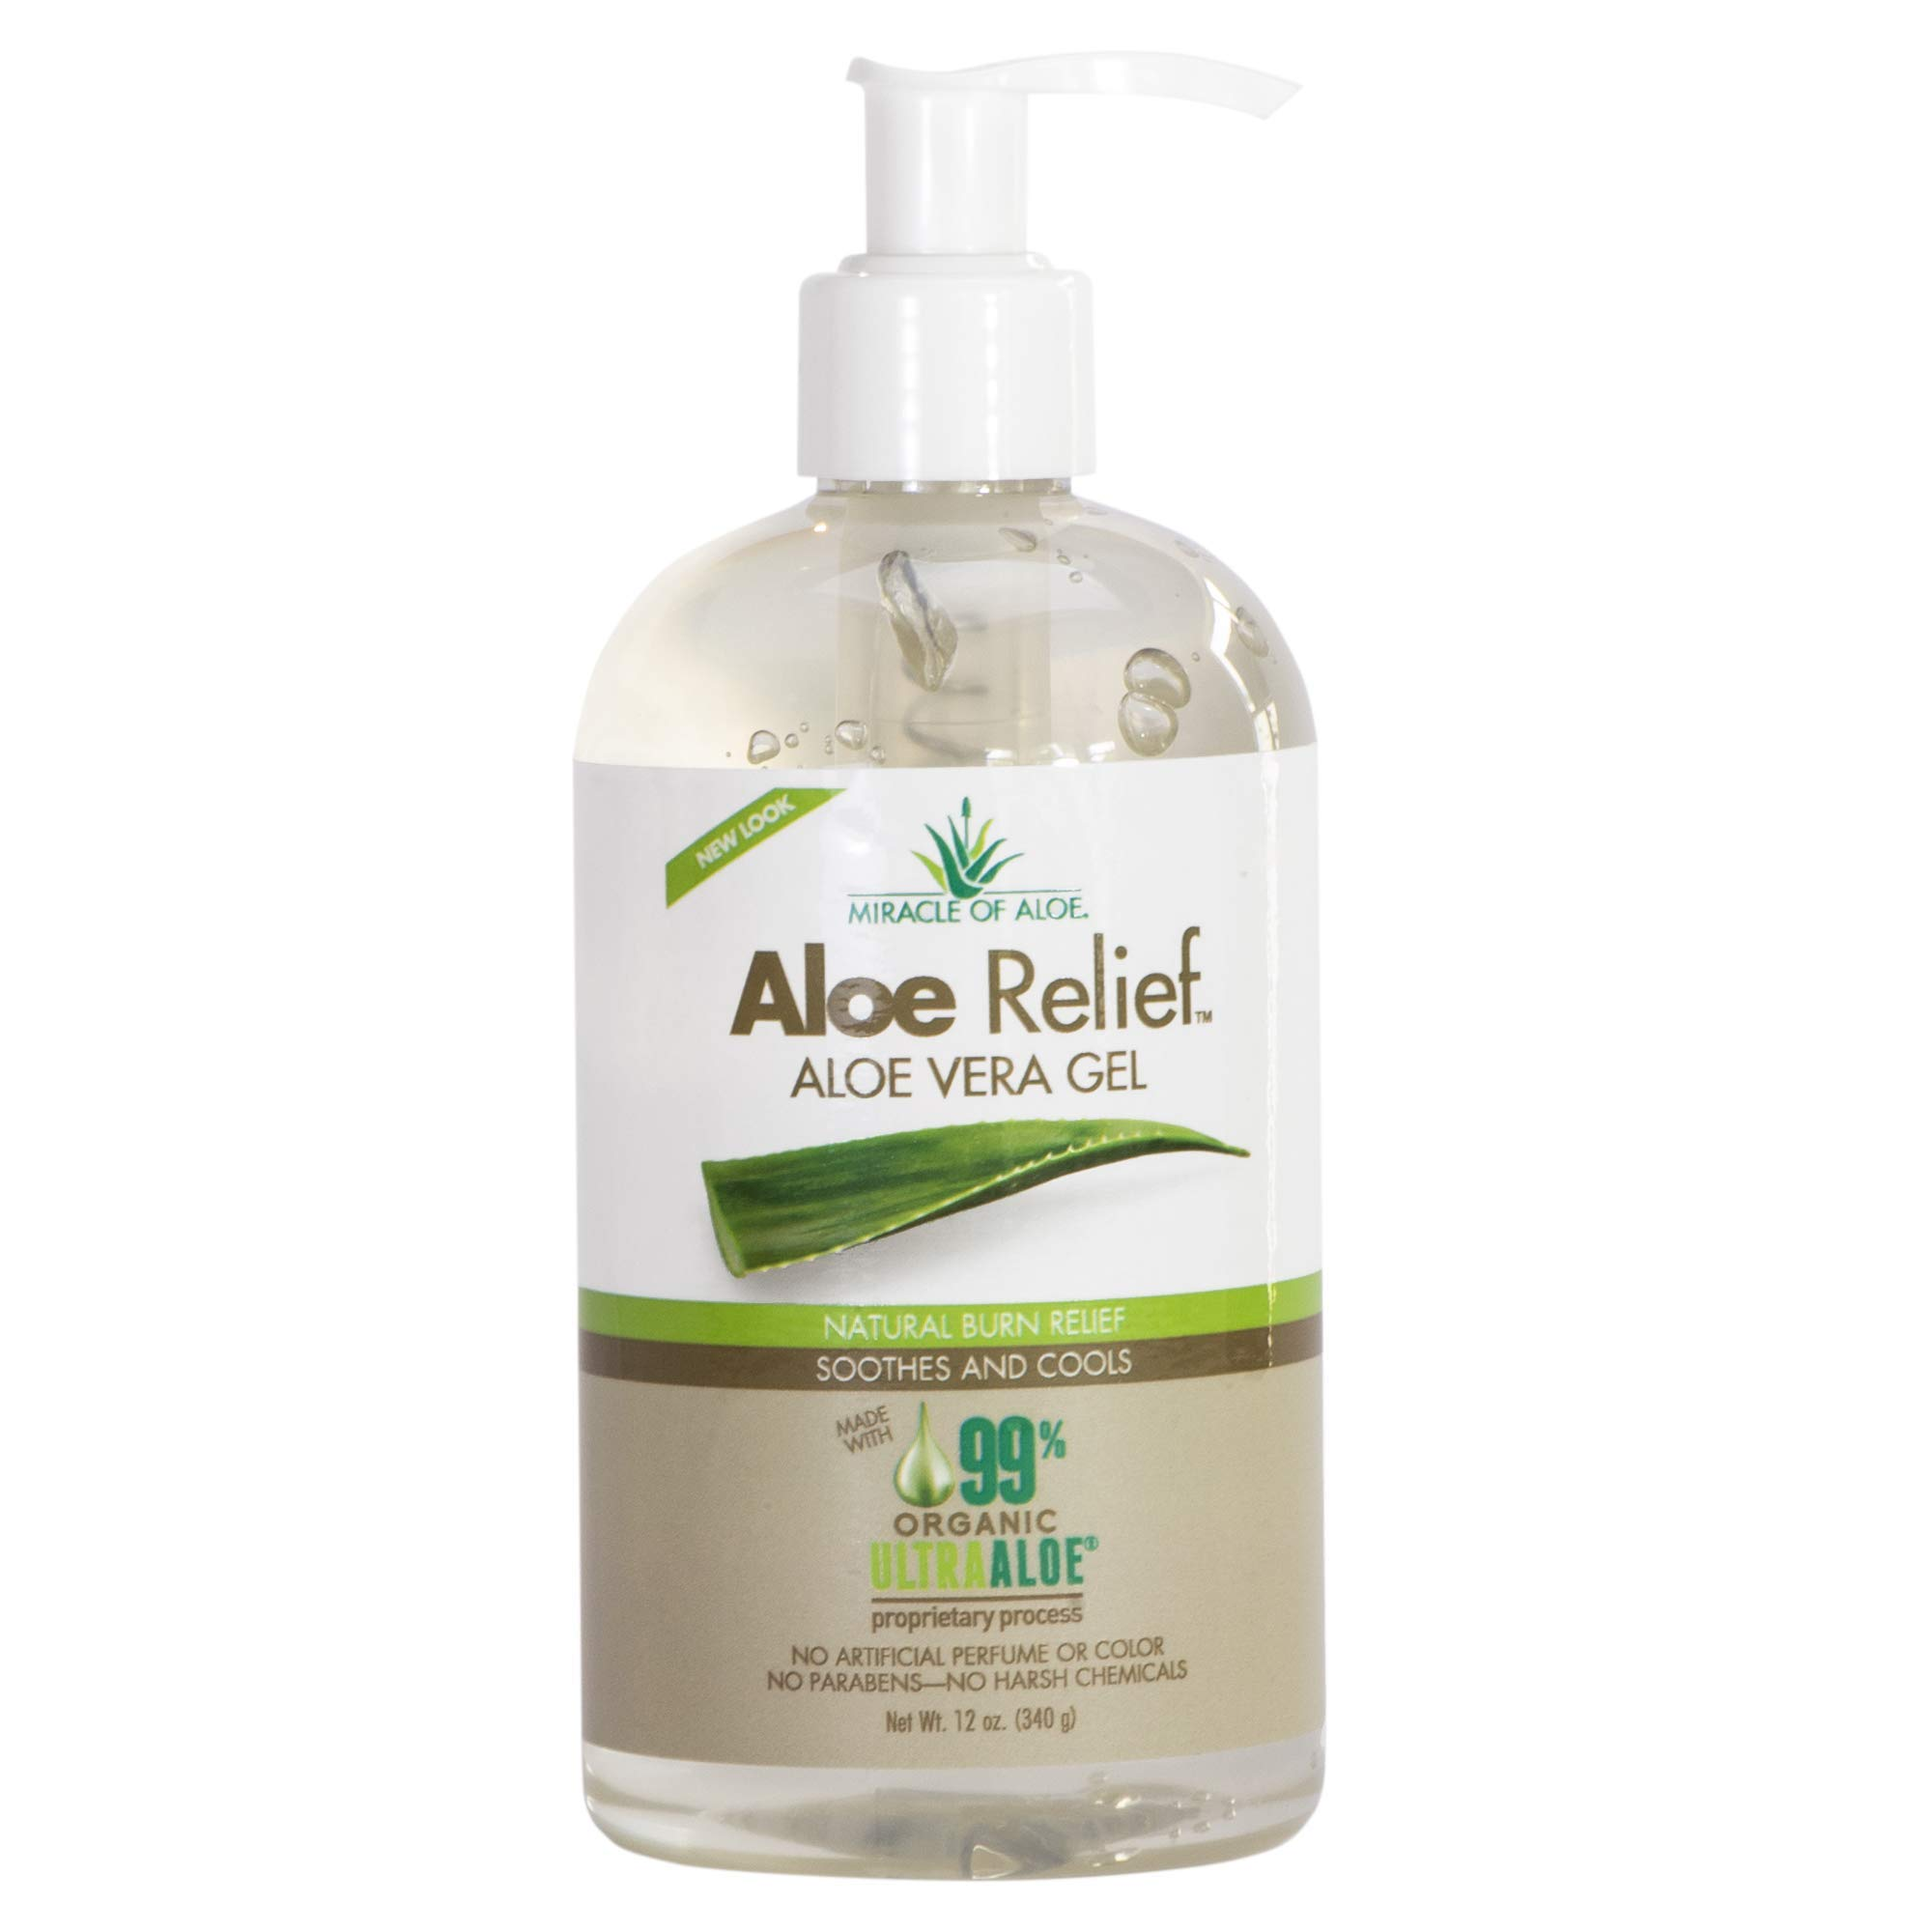 Aloe Relief Aloe Vera Gel 99% Pure Certified Organic made FRESH from the plant with naturally Enhanced UltraAloe Gel | No Parabens | No Fragrance | Cruelty Free | 12 ounce bottle with pump. by Miracle of Aloe